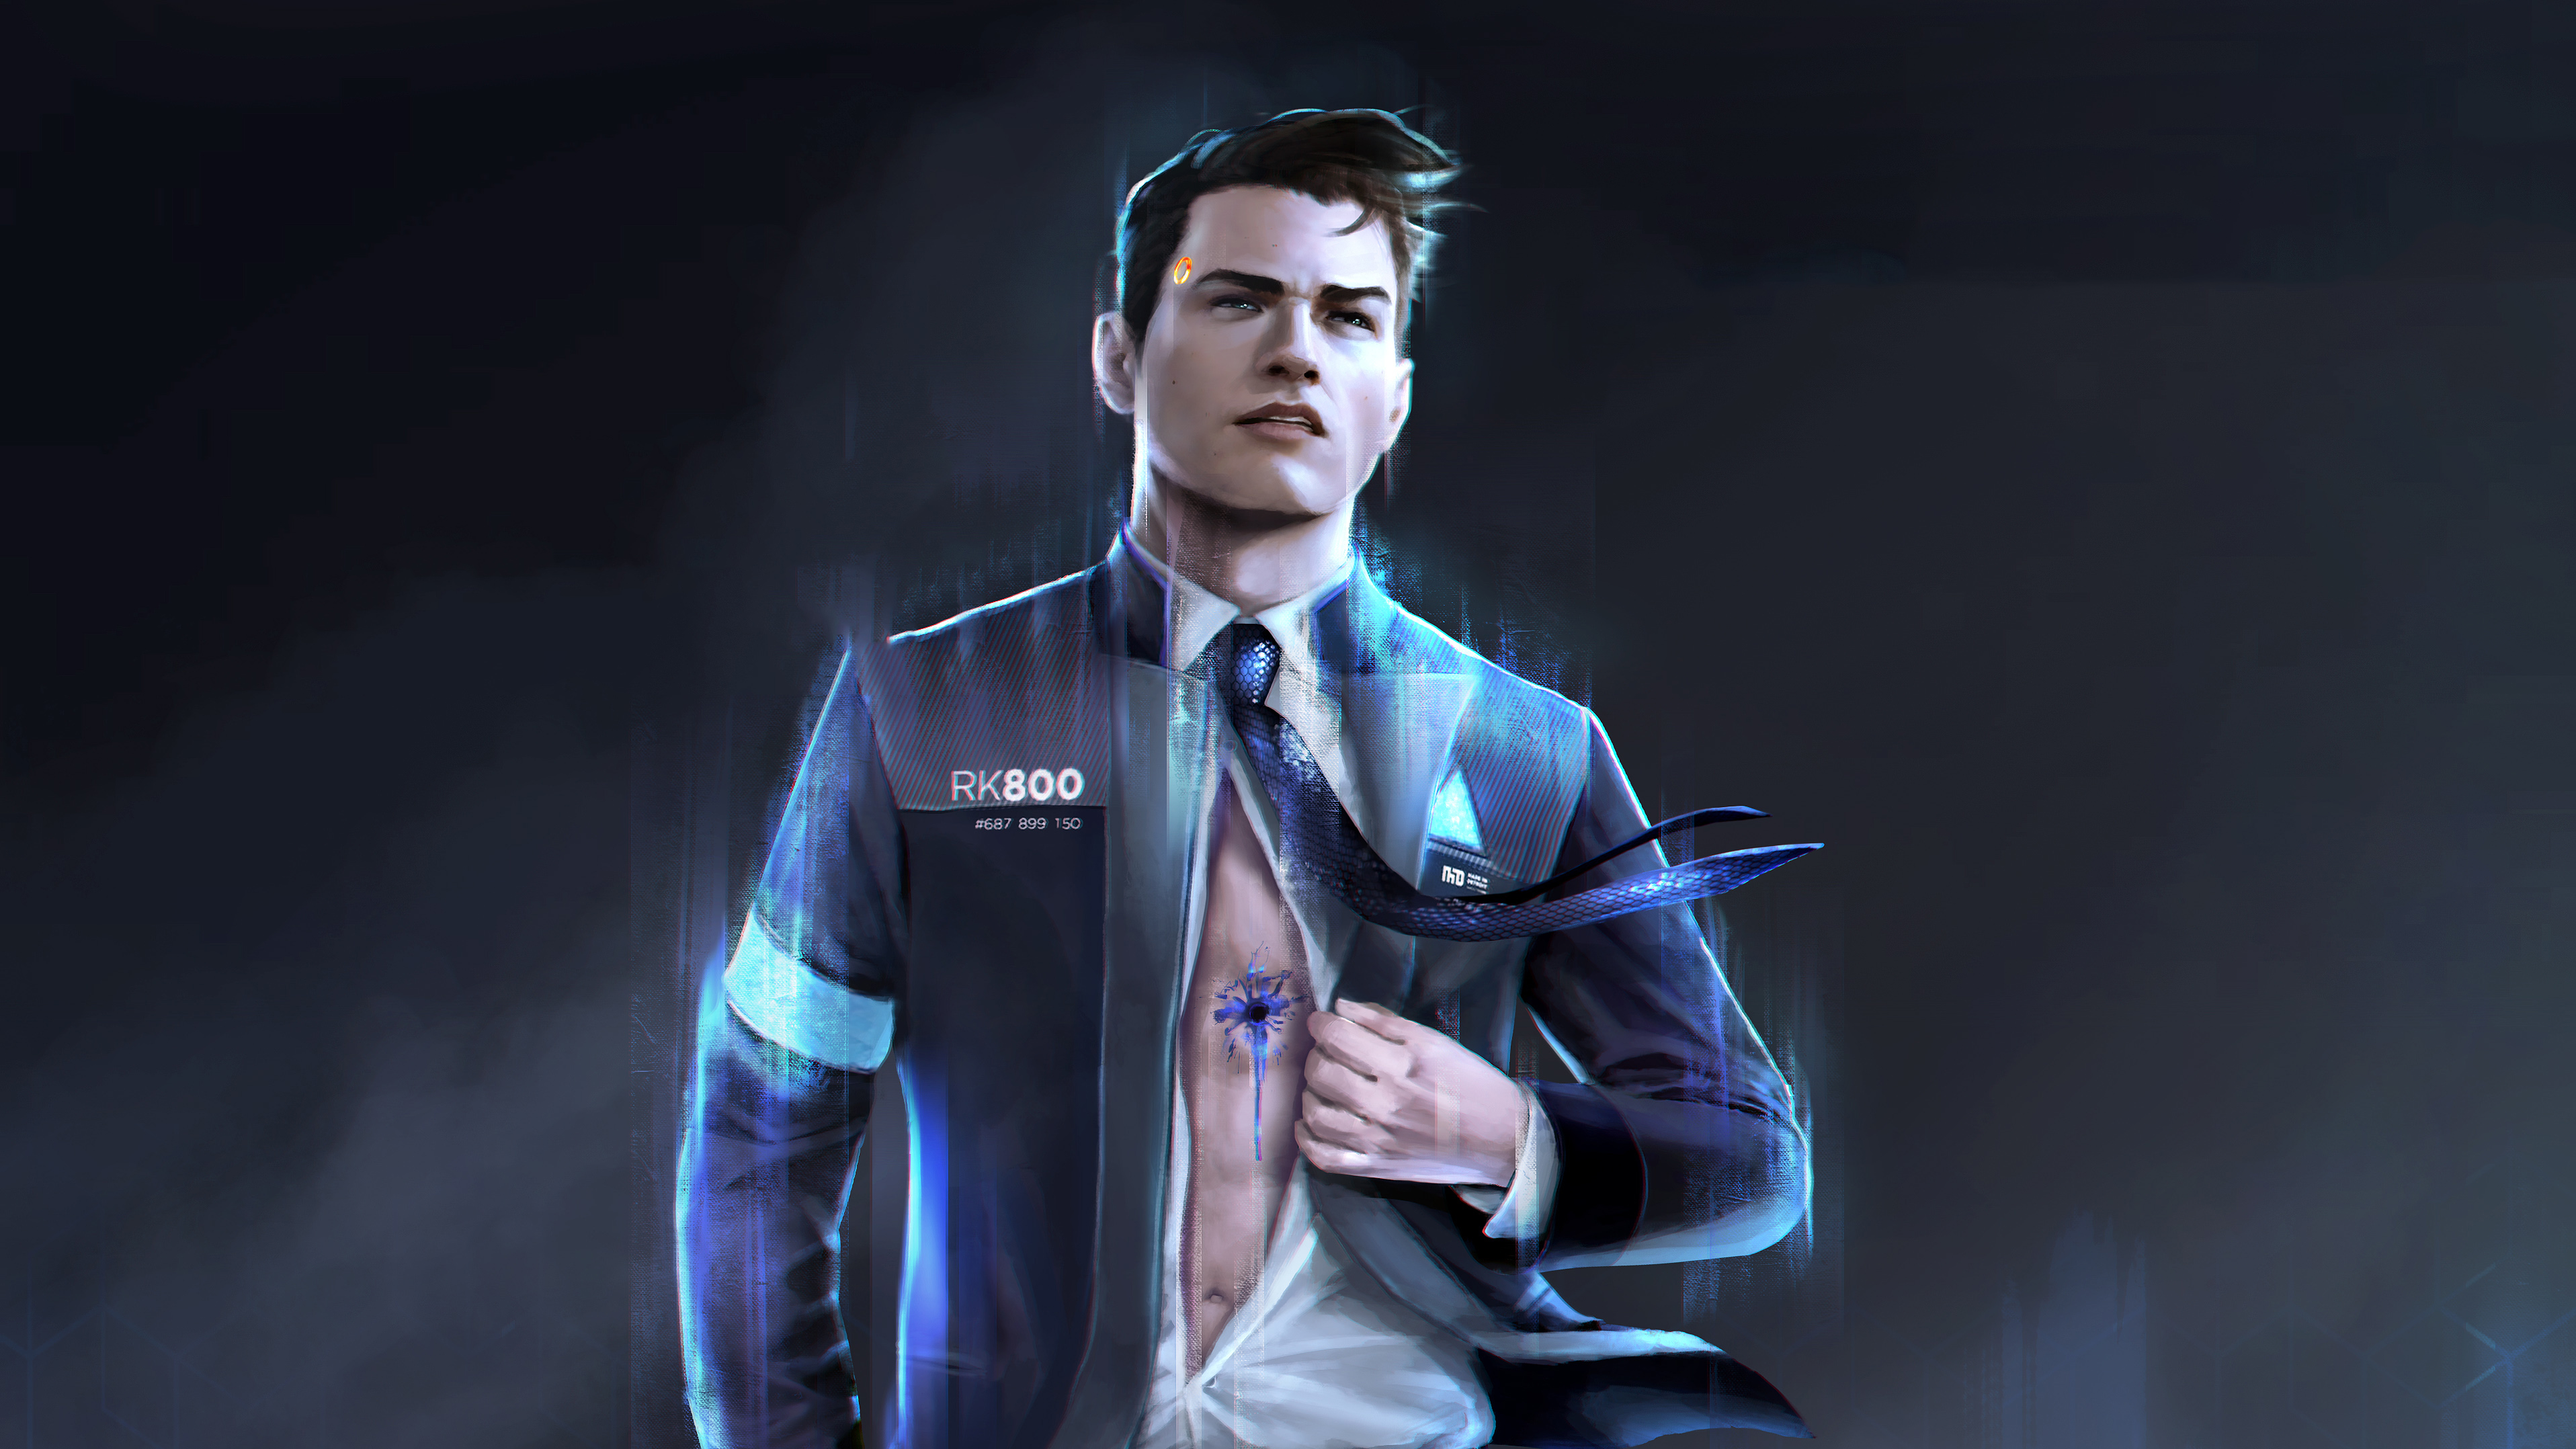 Detroit Become Human Game Wallpaper Hd Games 4k Wallpapers